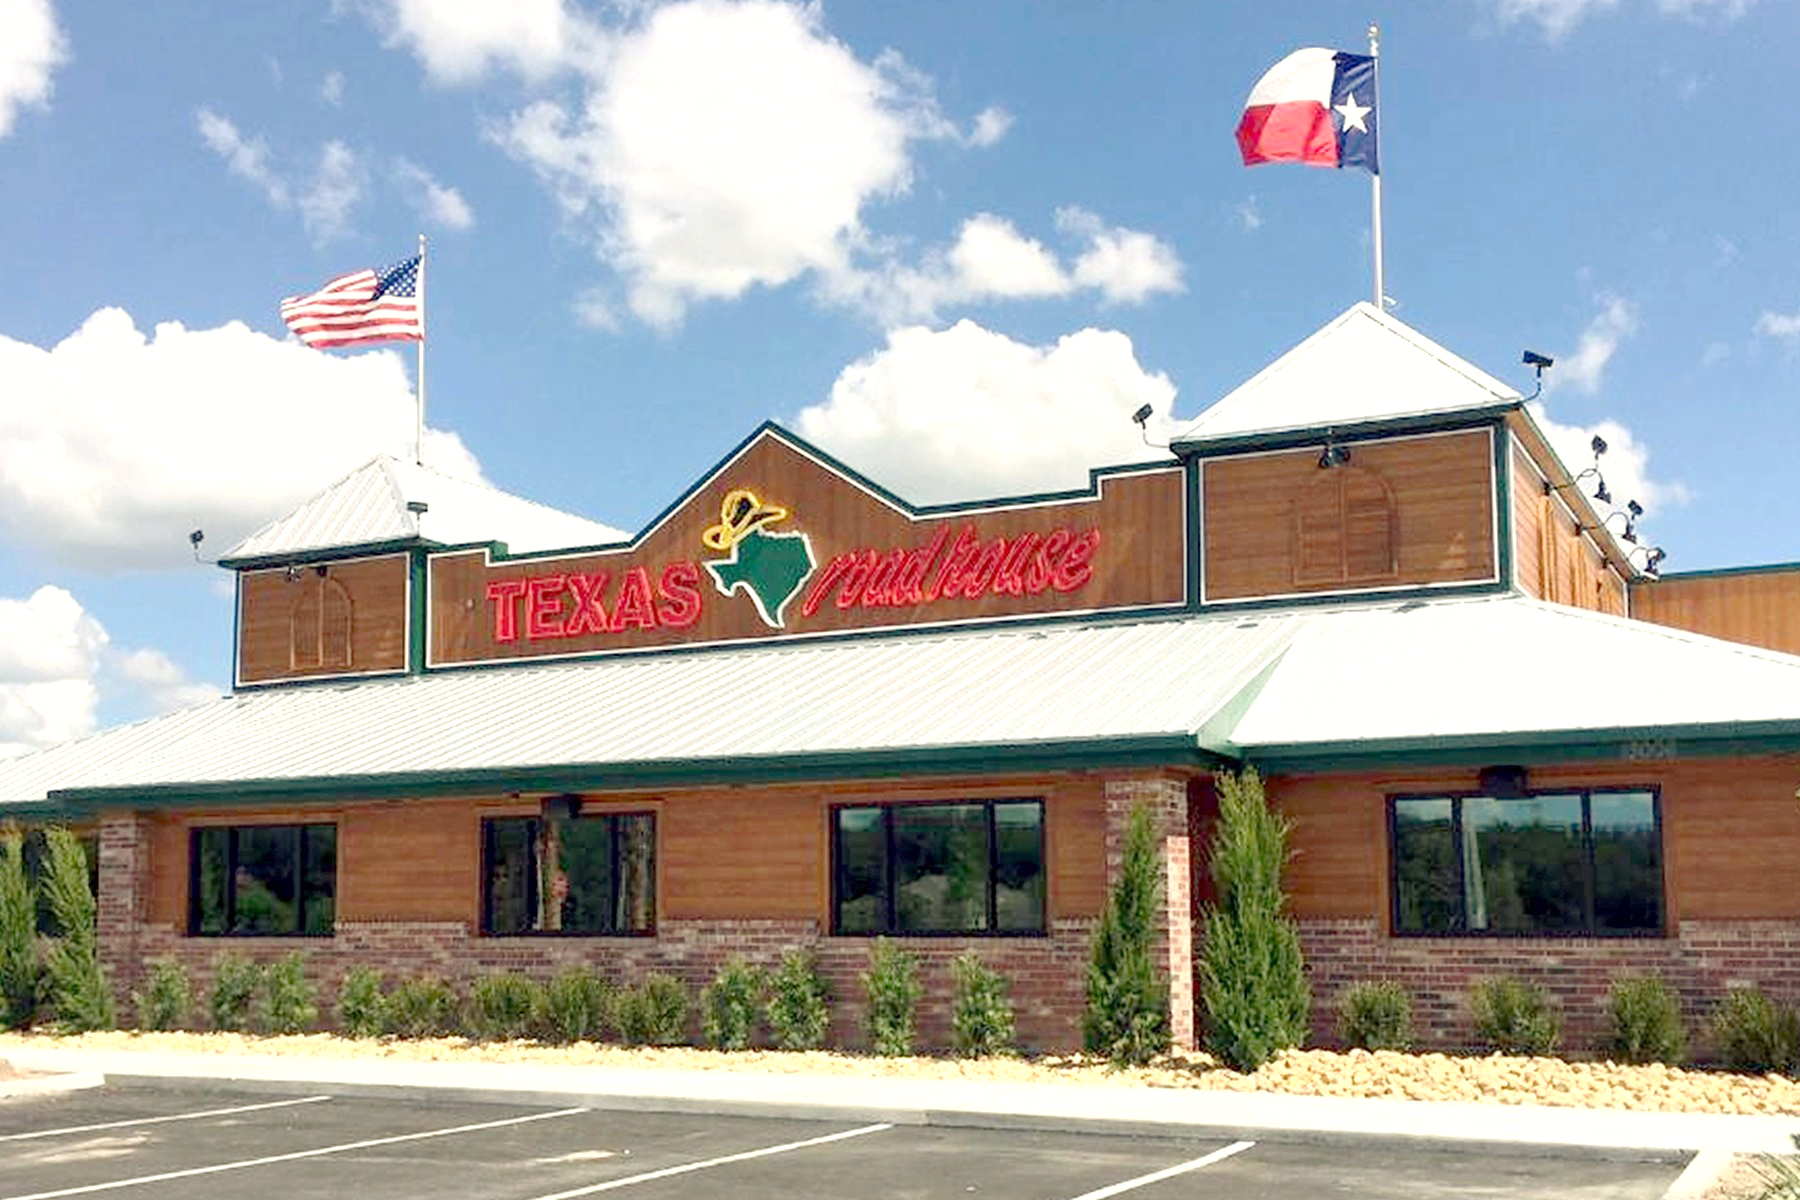 Riverview Welcome Texas Roadhouse The Observer News South Shore Riverview Sun City Center